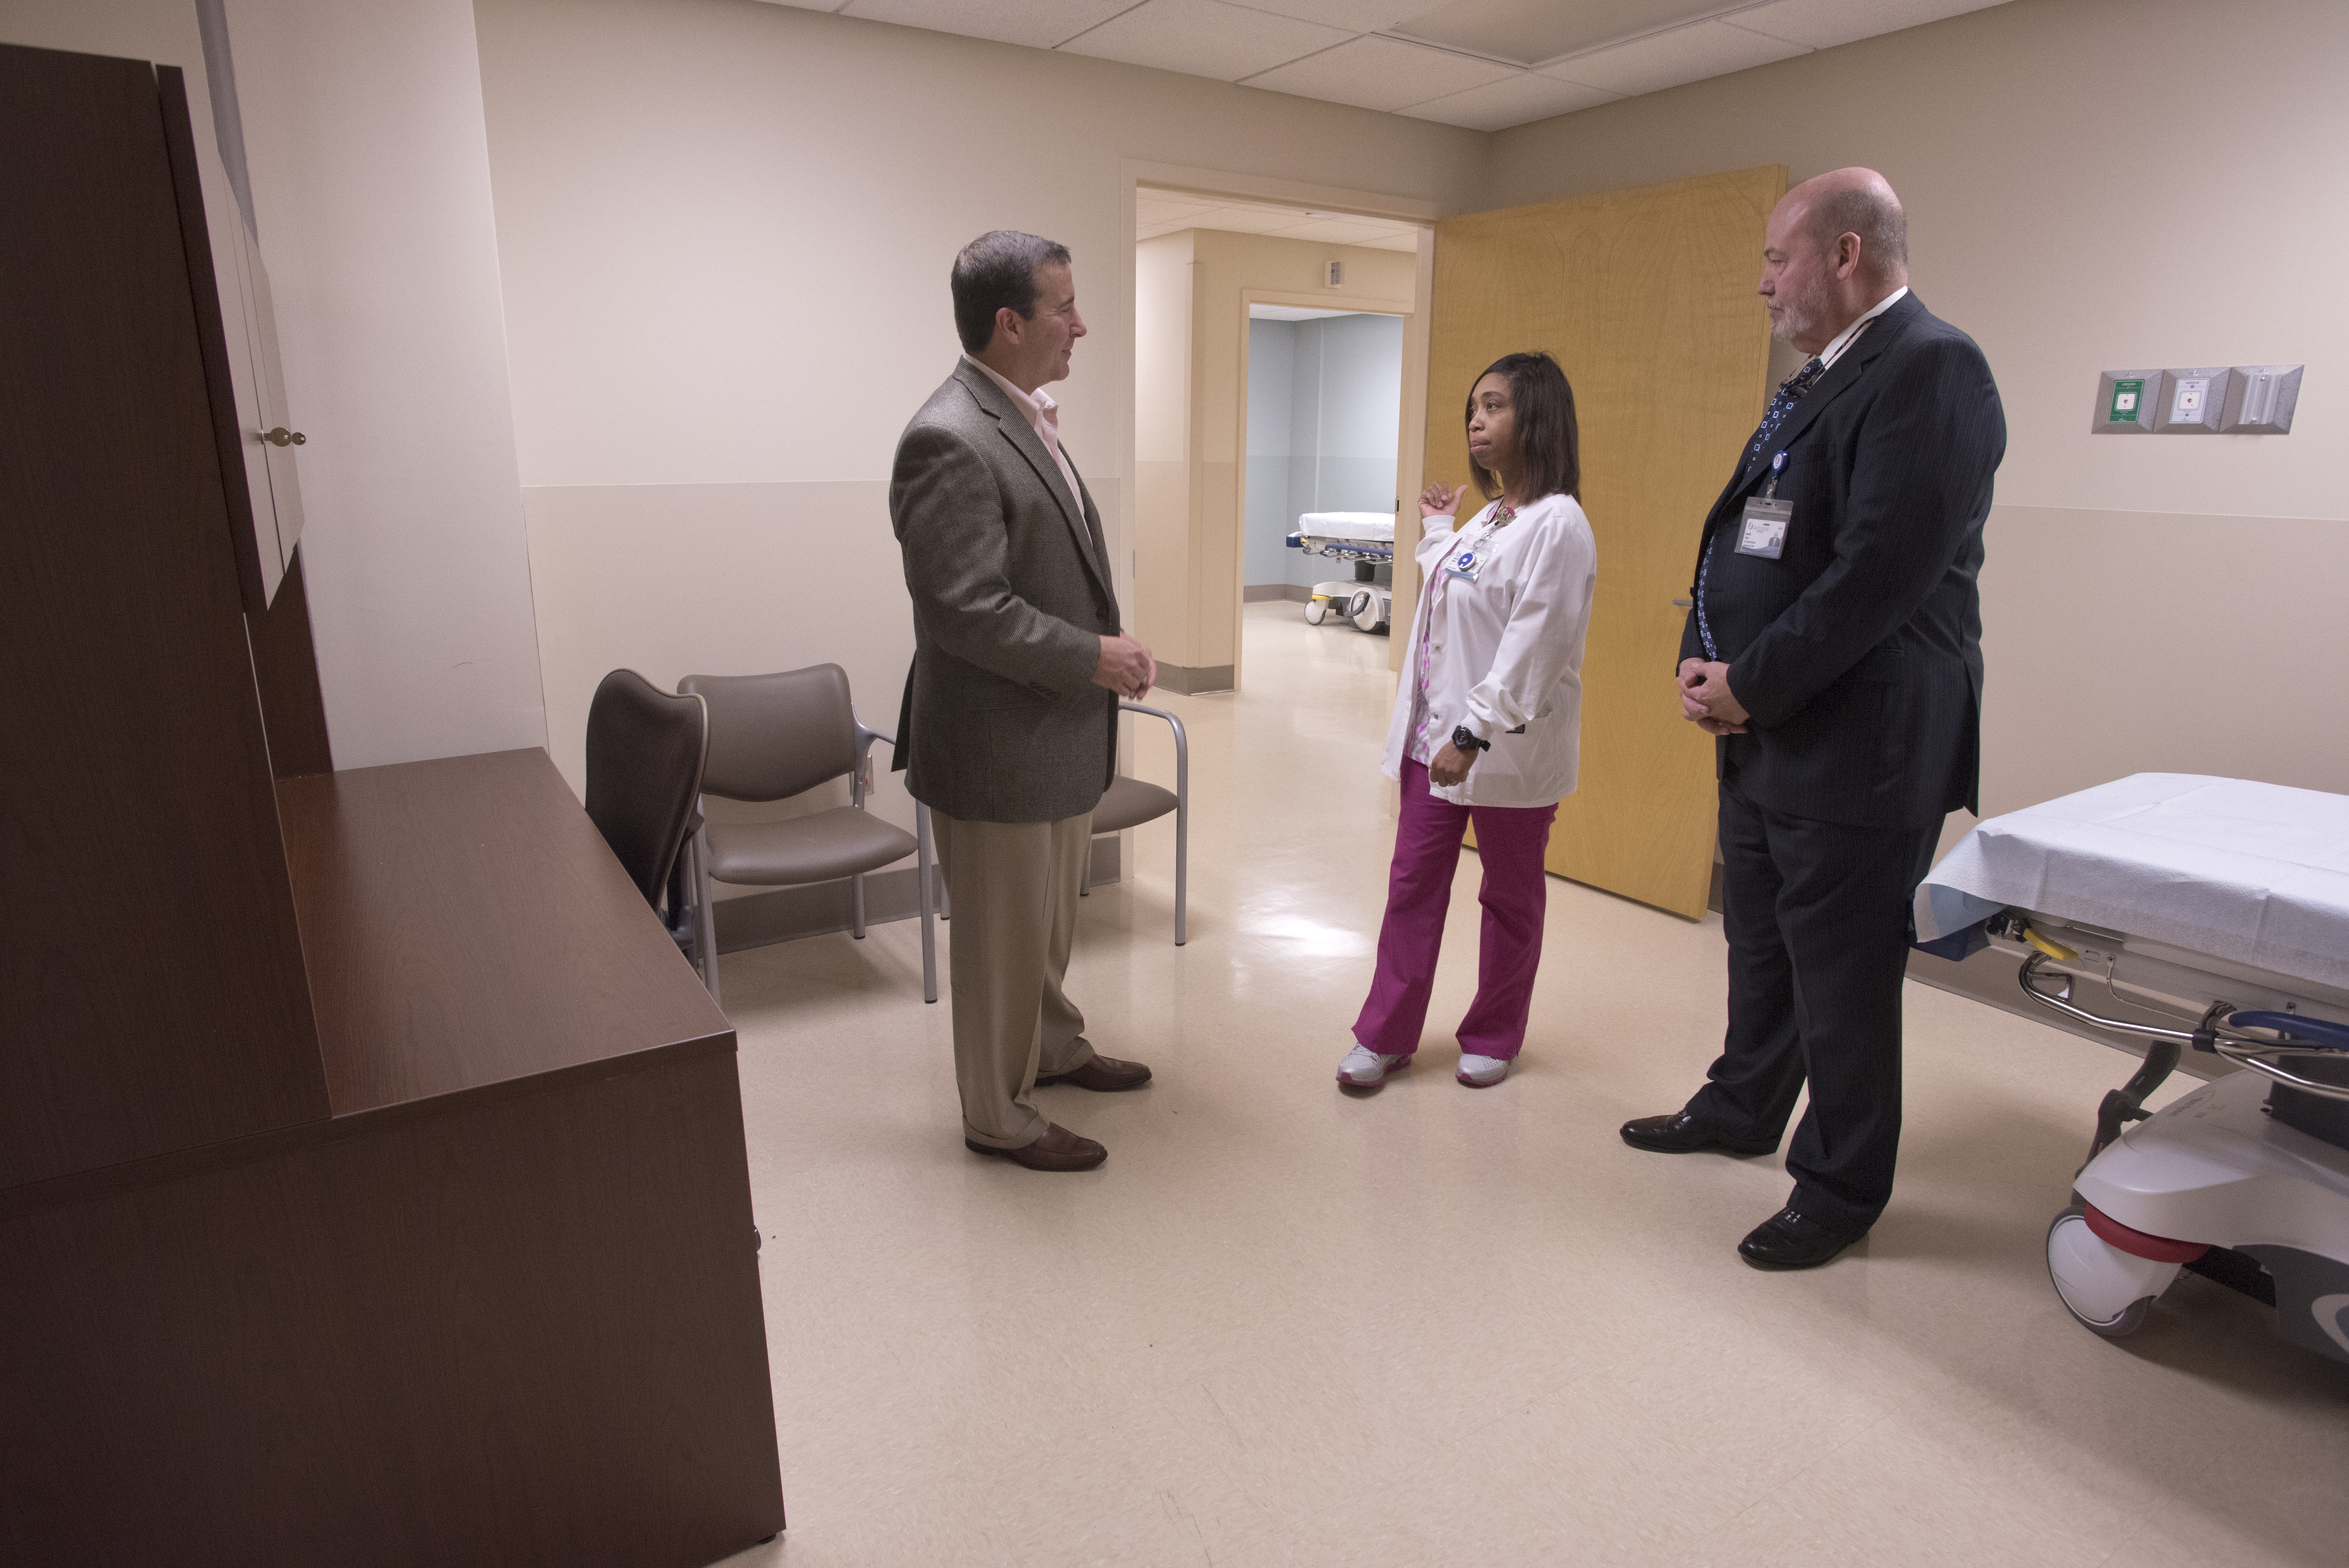 Kevin Cook (left), CEO of University Hospitals and Health System, and David Putt, CEO of UMMC Holmes County and UMMC Grenada, get a tour of the Lexington hospital's new Emergency Department triage room from registered nurse Lakessha Head.